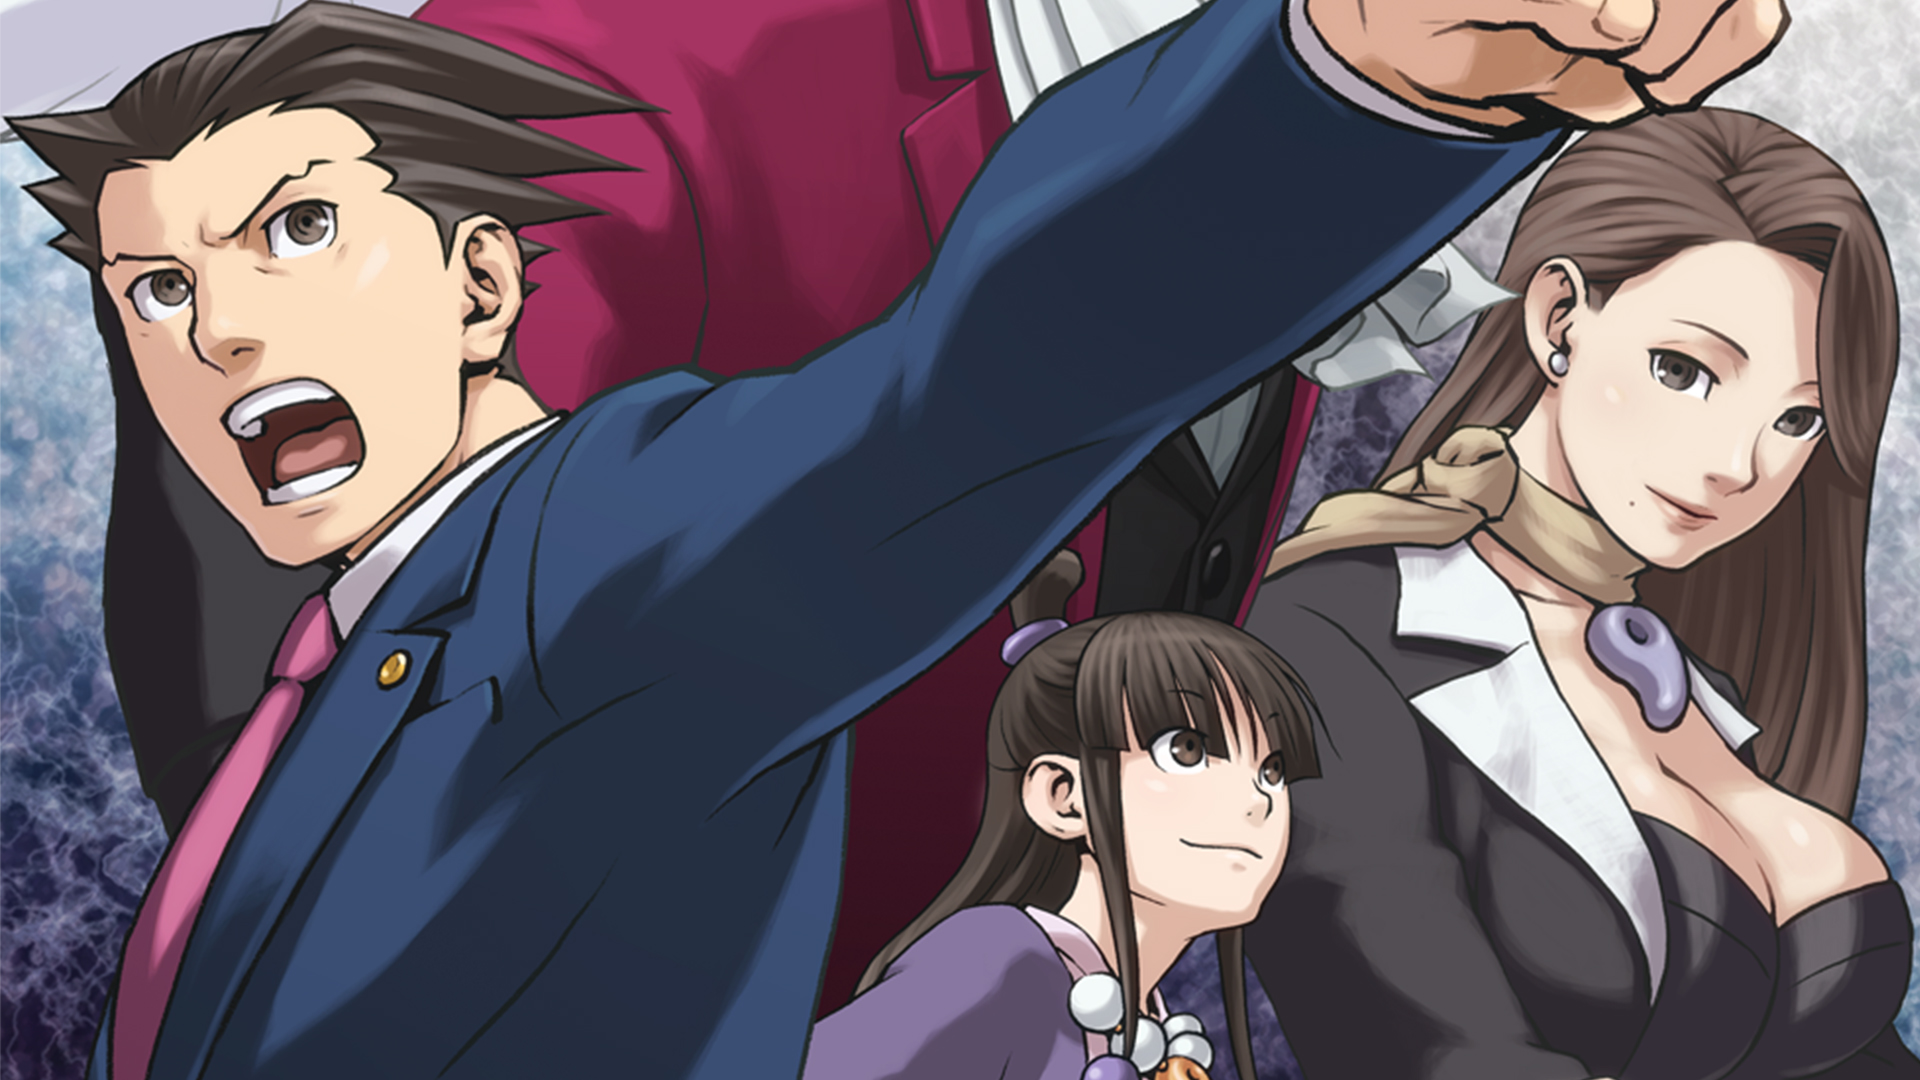 No Objections Phoenix Wright Ace Attorney Trilogy Hits Pc In